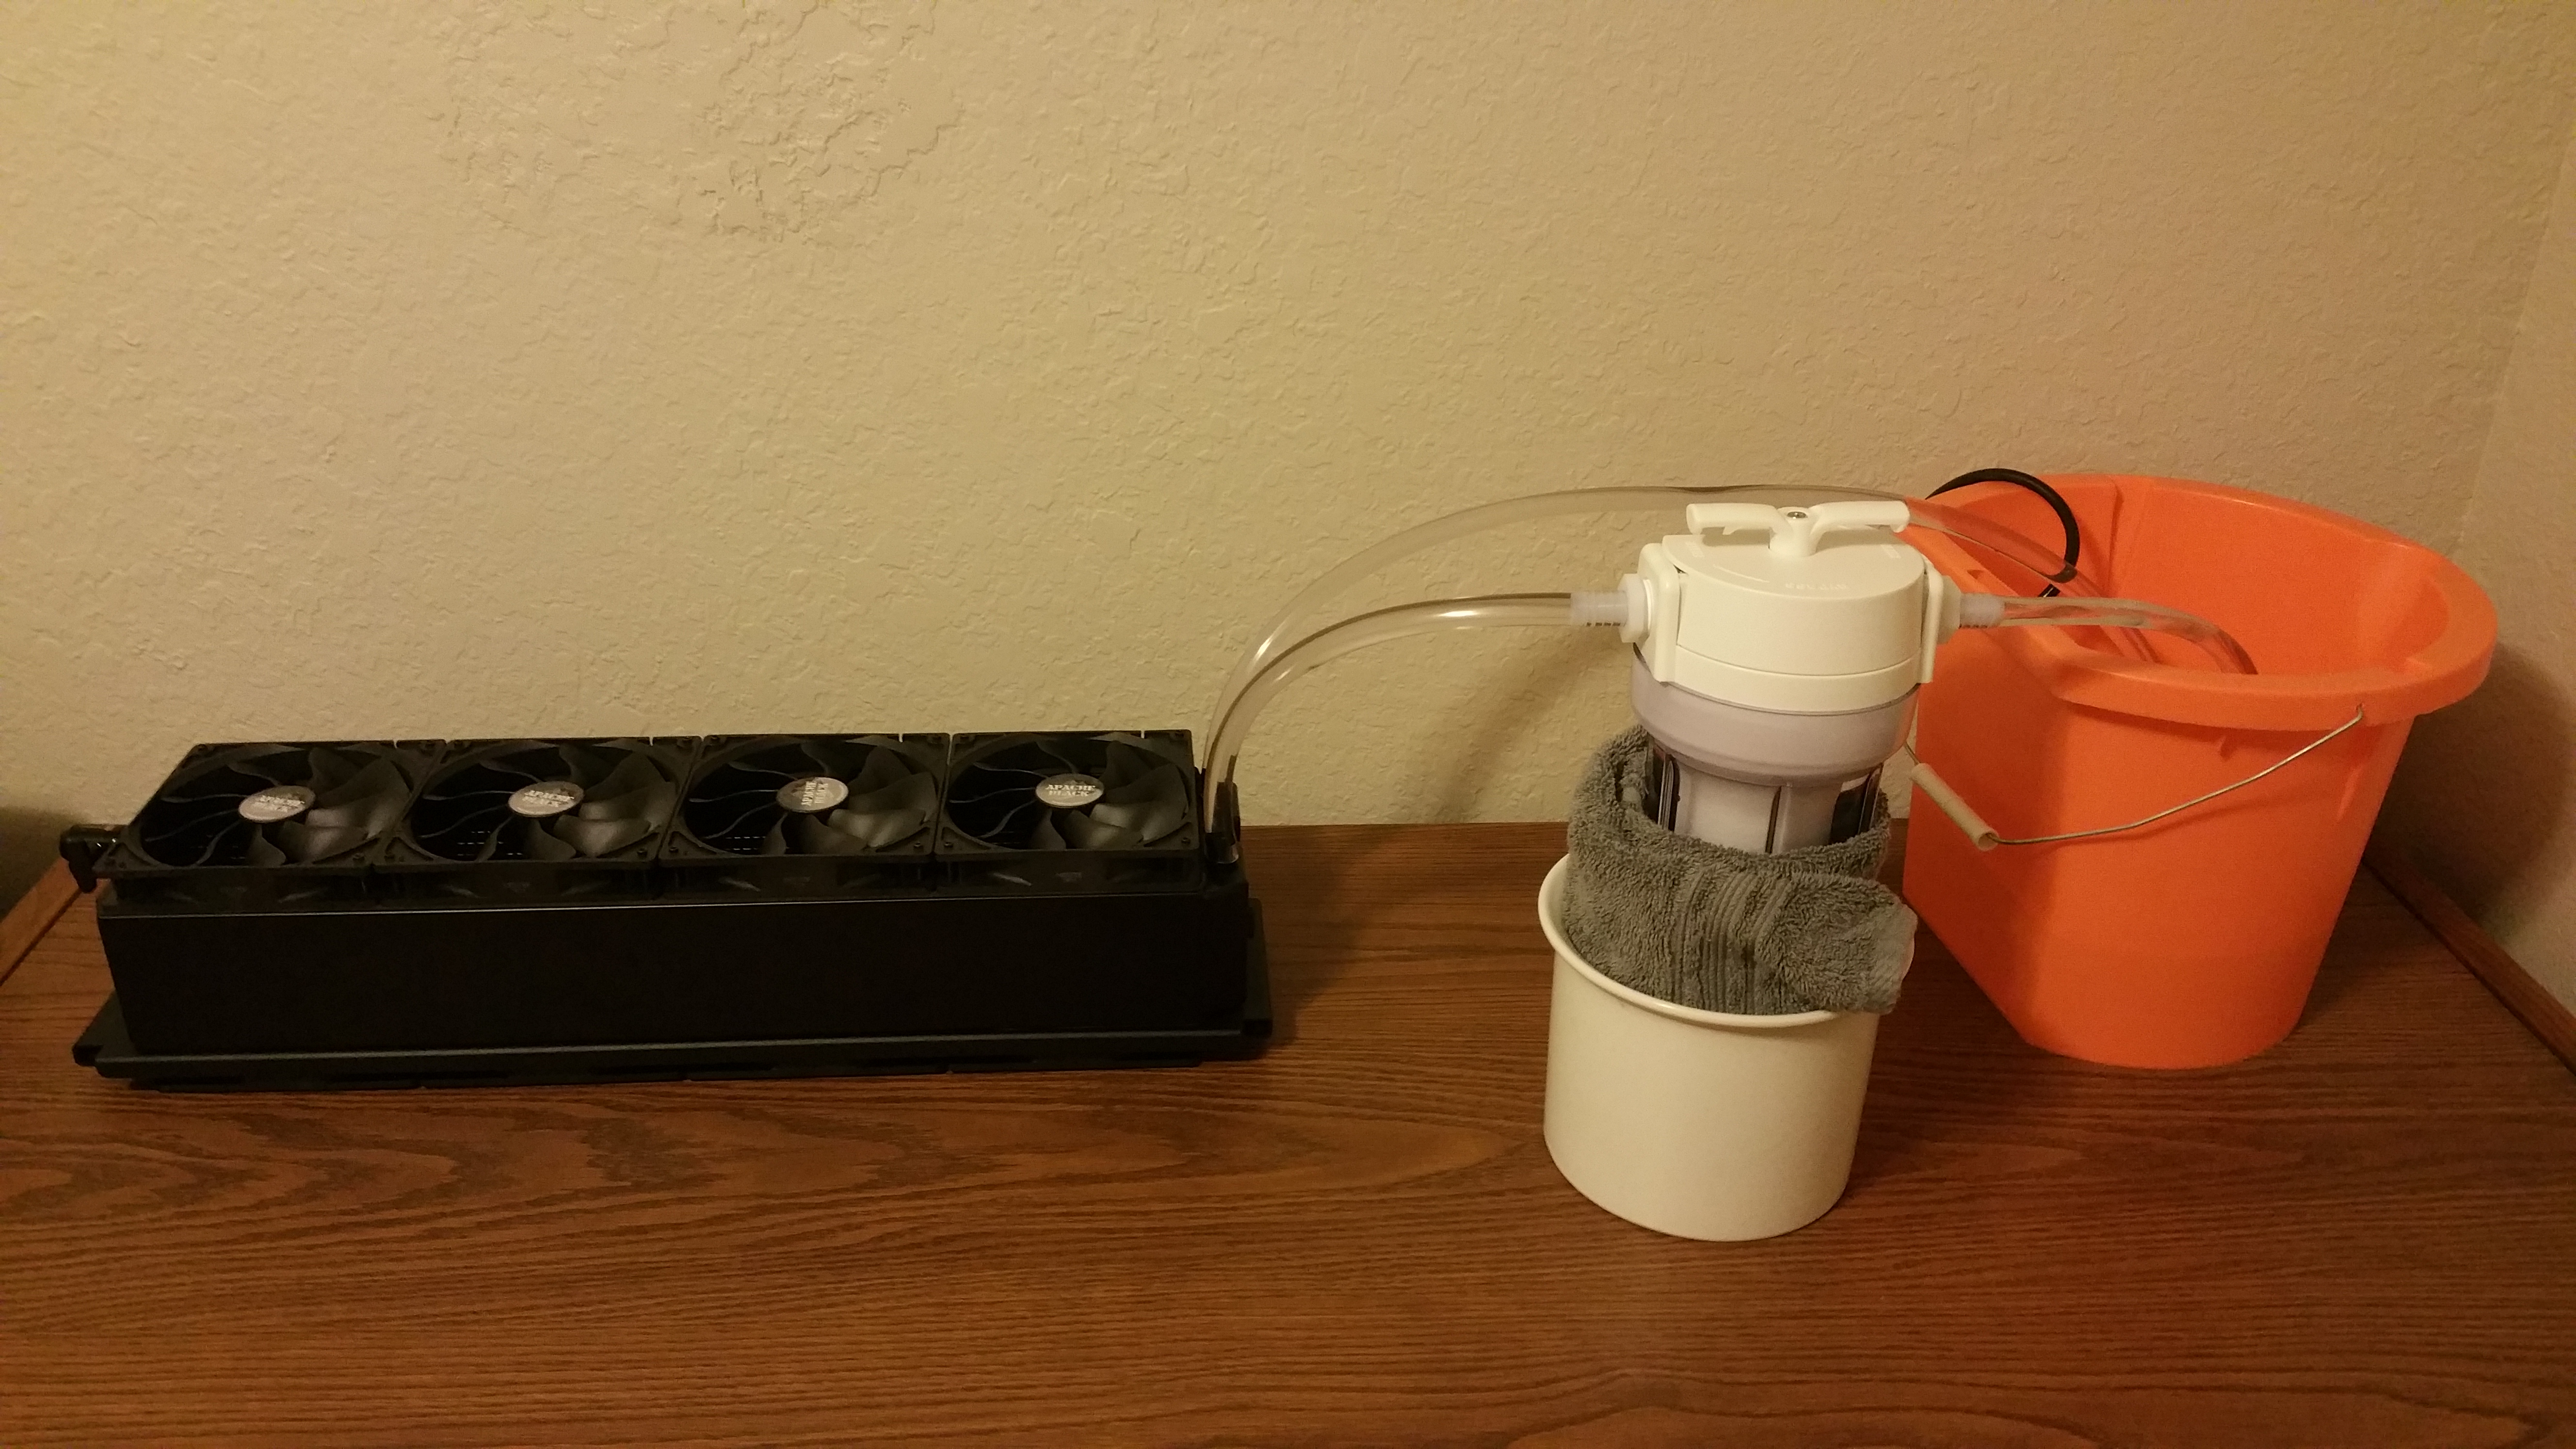 This is the setup while filtering.